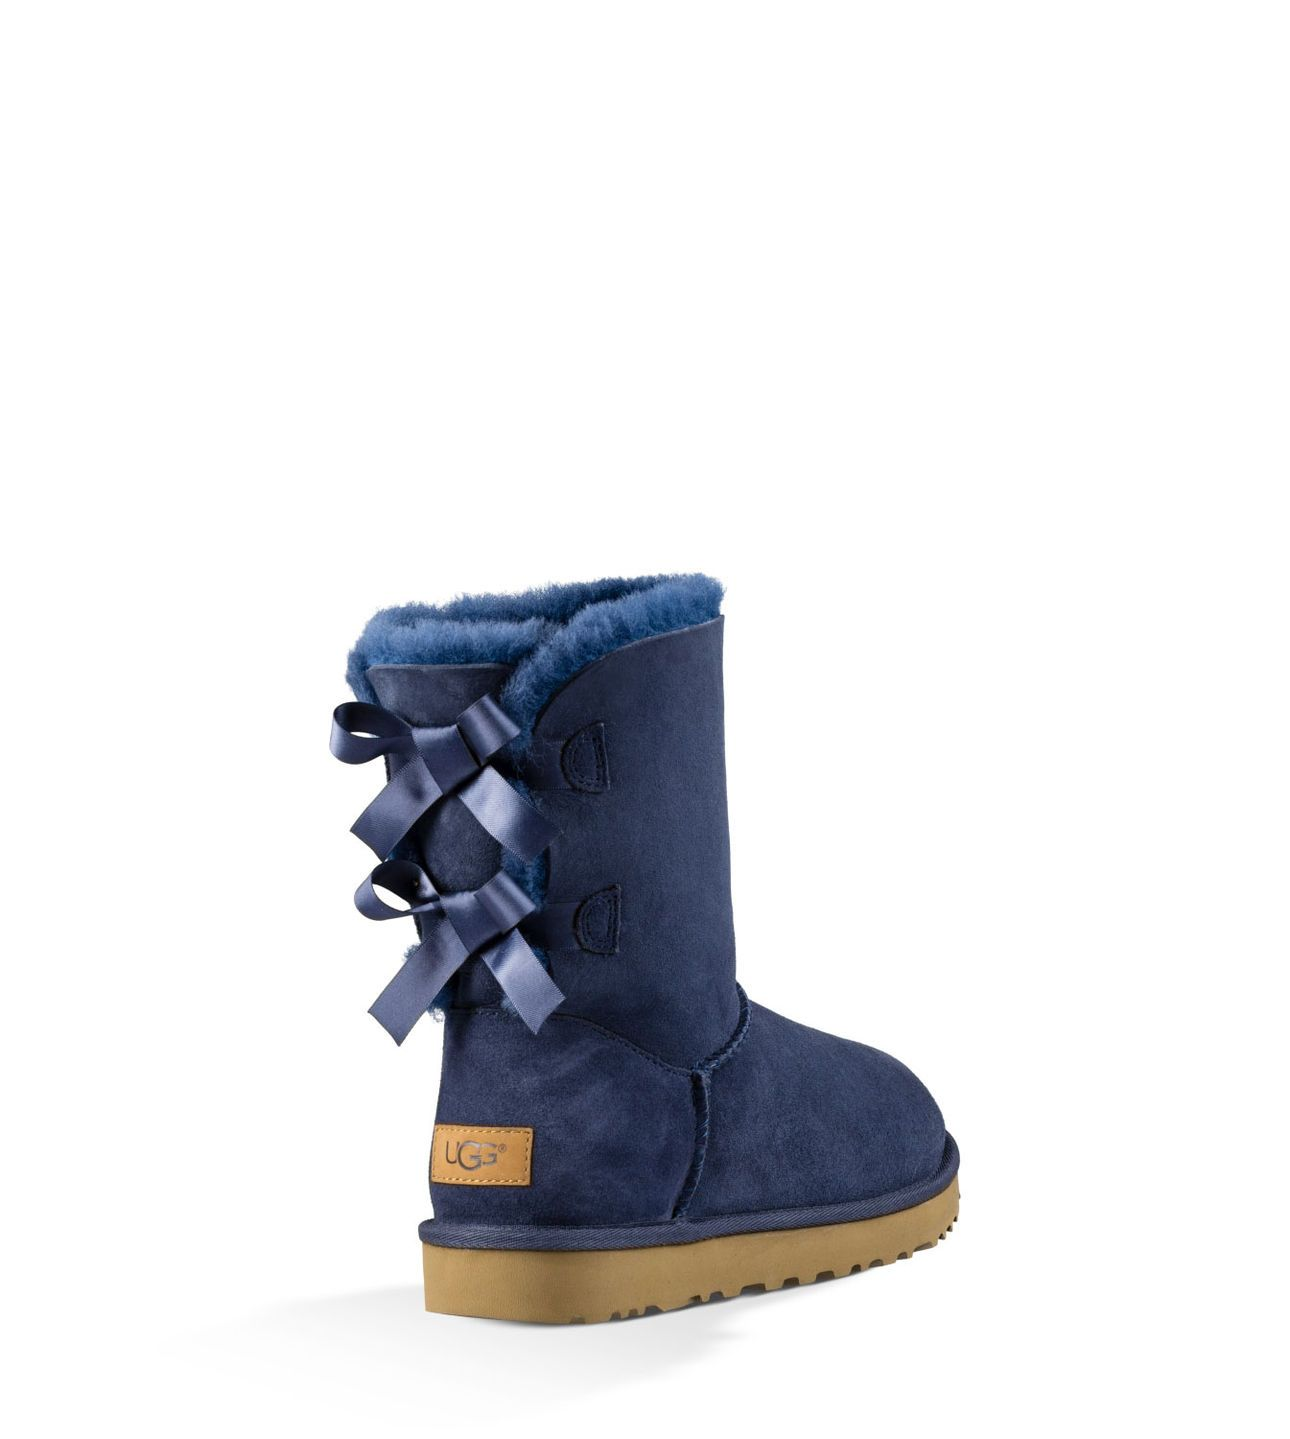 UGG BOOTS IN PINK, Women's Fashion, Shoes, Boots on Carousell